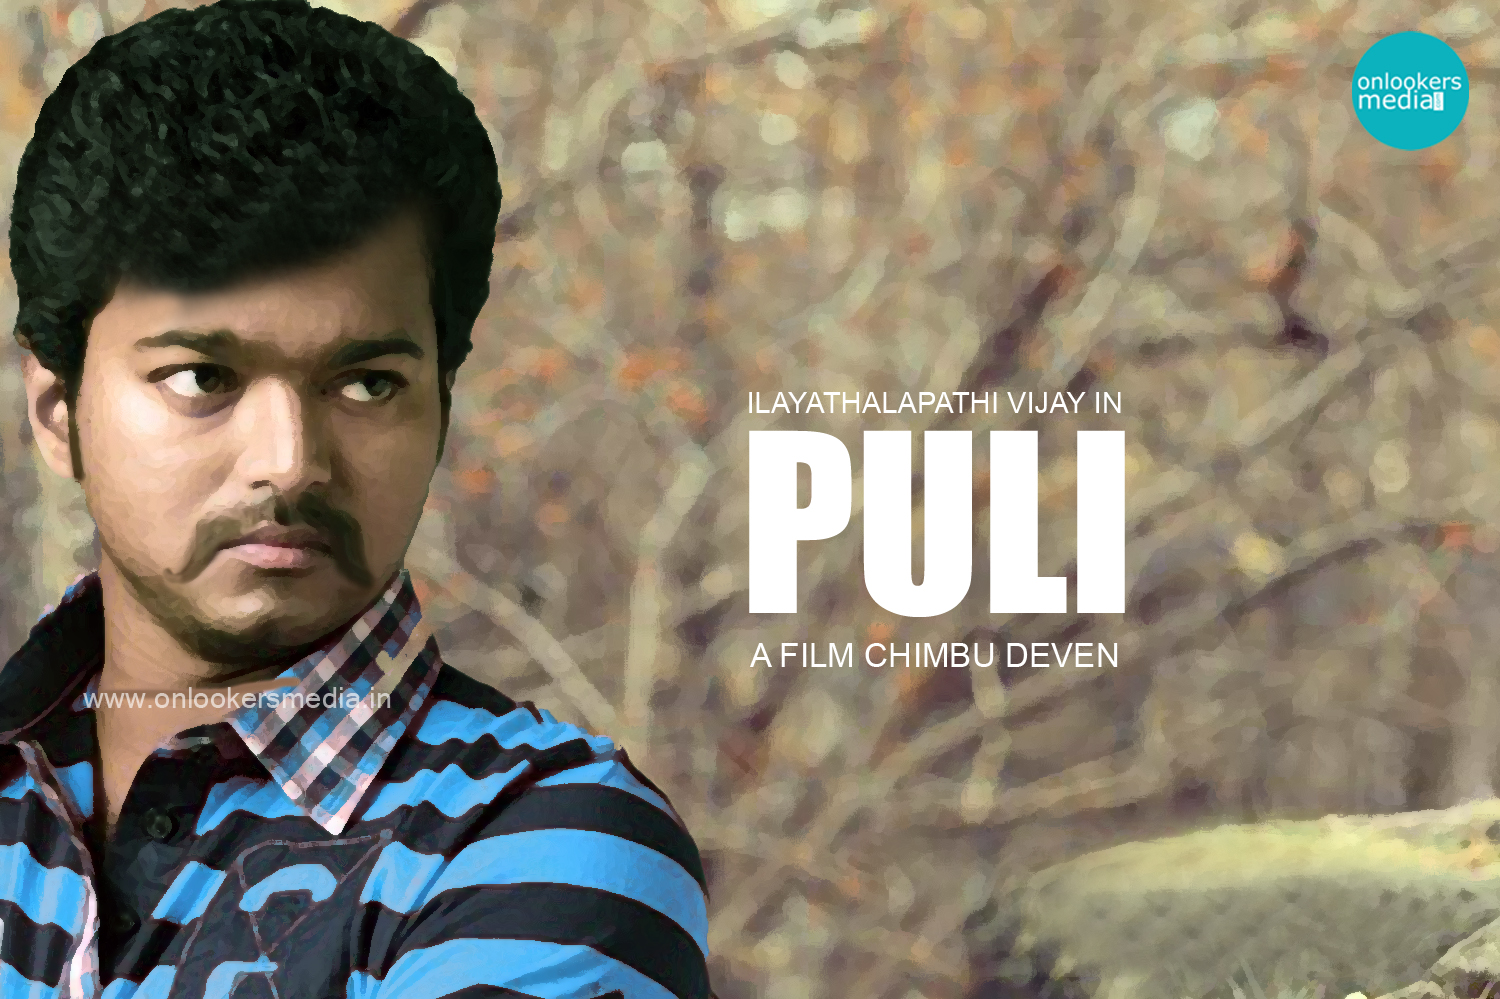 Vijay in Puli-Movie Stills-images-posters-video-mp-song-Onlookers Media